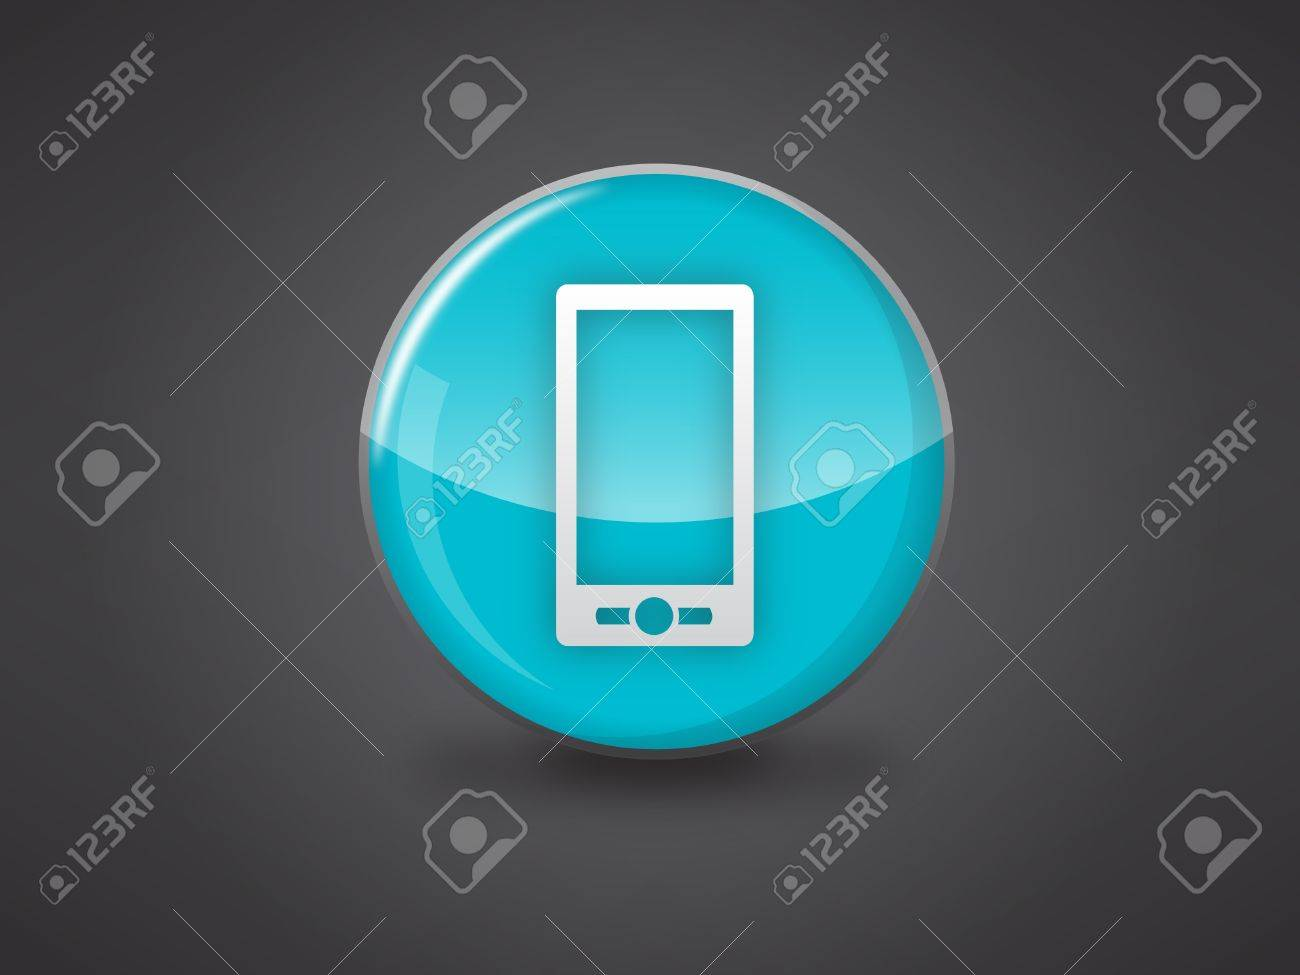 mobile phone icon on blue glossy circle vector illustration on dark grey background, this image available in jpeg and eps formats Stock Vector - 18512340